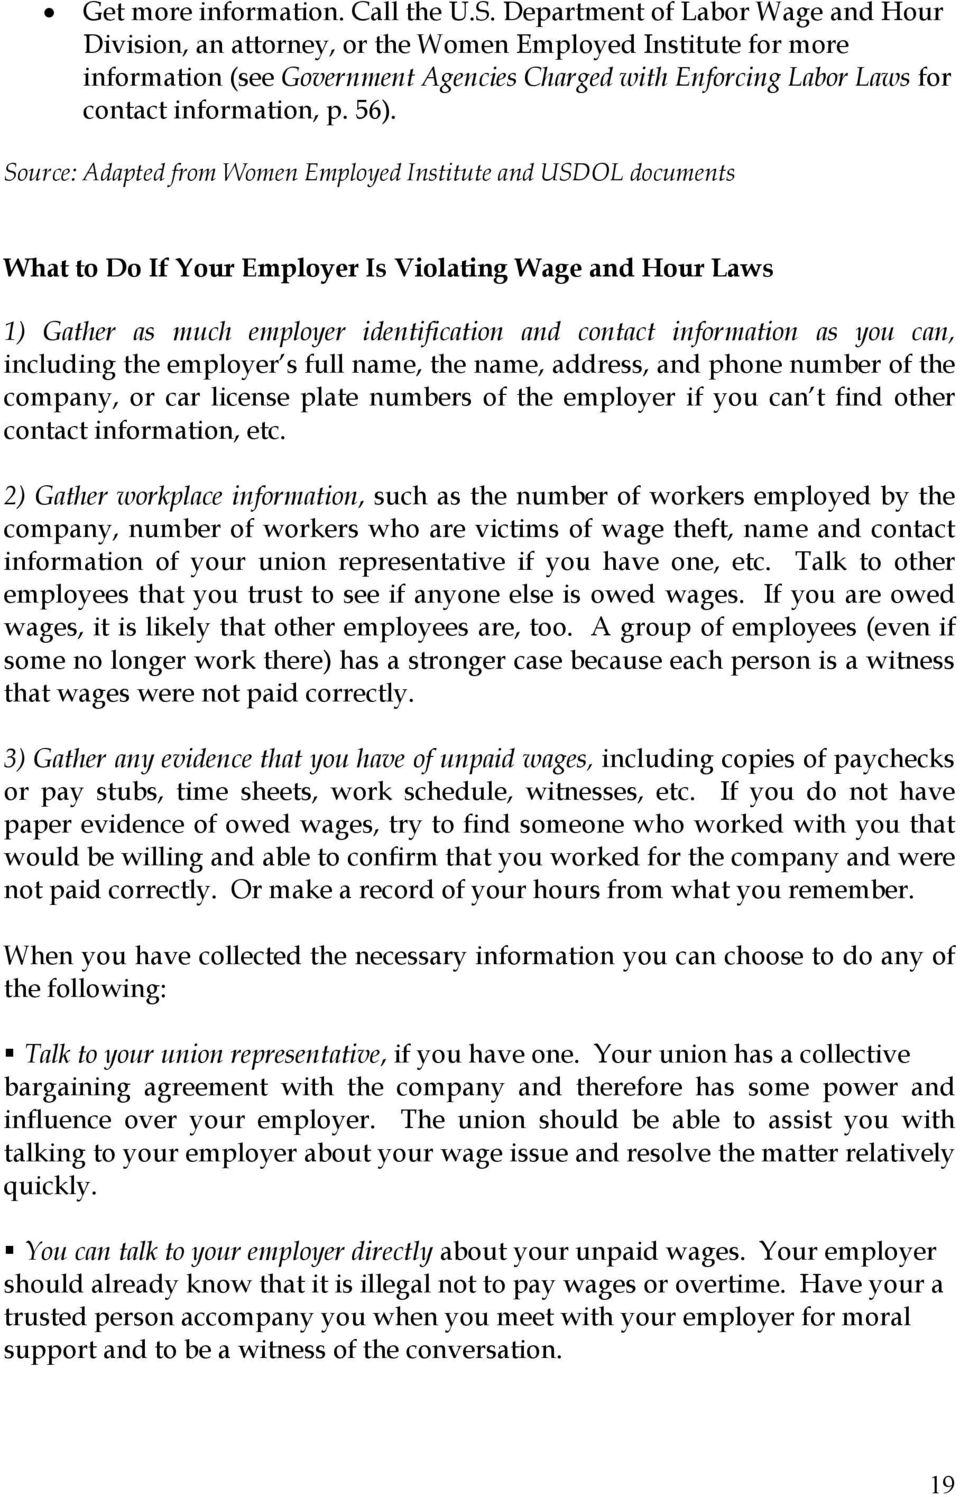 56). Source: Adapted from Women Employed Institute and USDOL documents What to Do If Your Employer Is Violating Wage and Hour Laws 1) Gather as much employer identification and contact information as